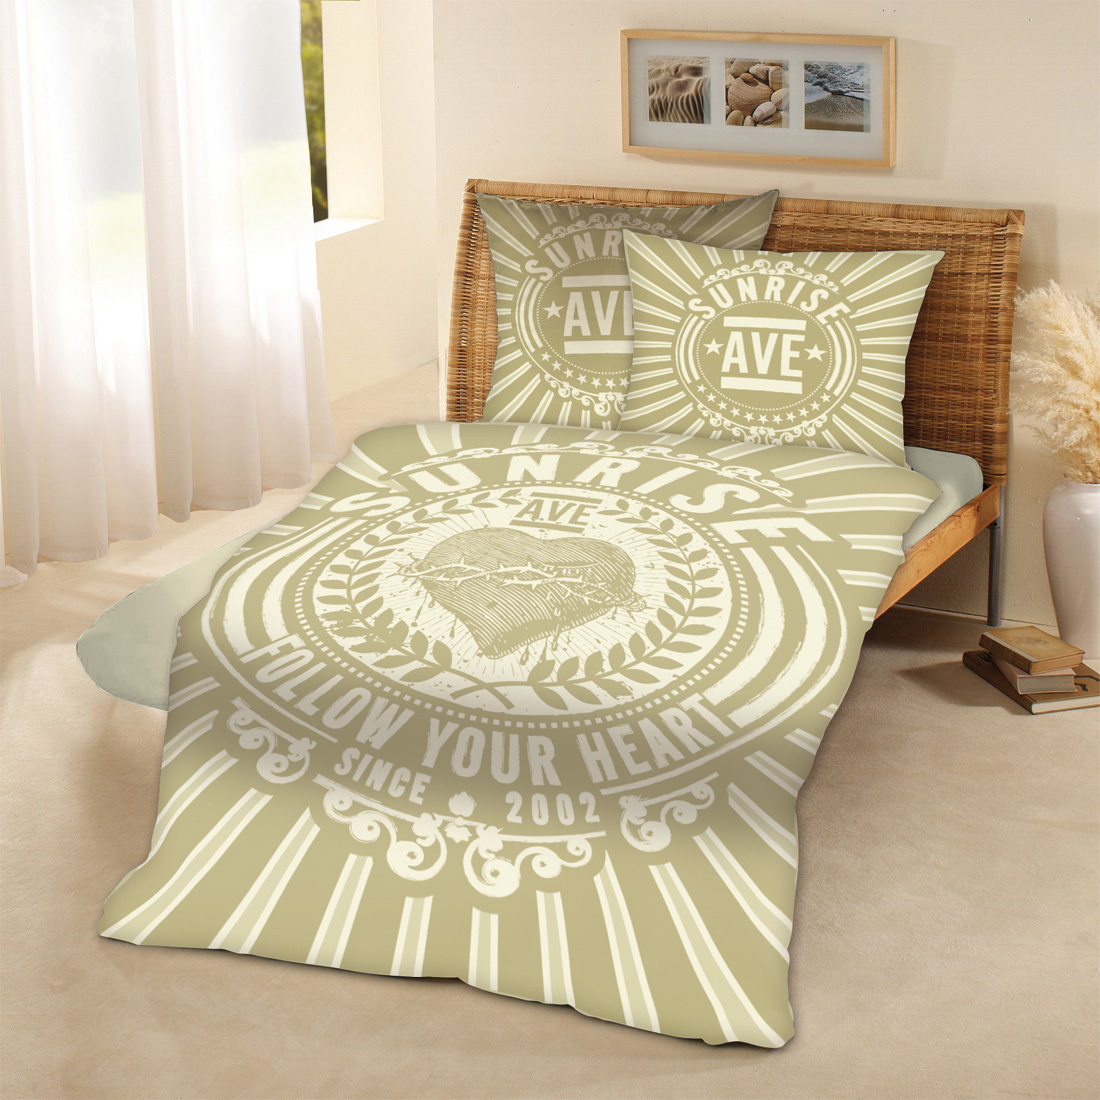 √Follow Your Heart von Sunrise Avenue - Bed linen jetzt im Sunrise Avenue Shop